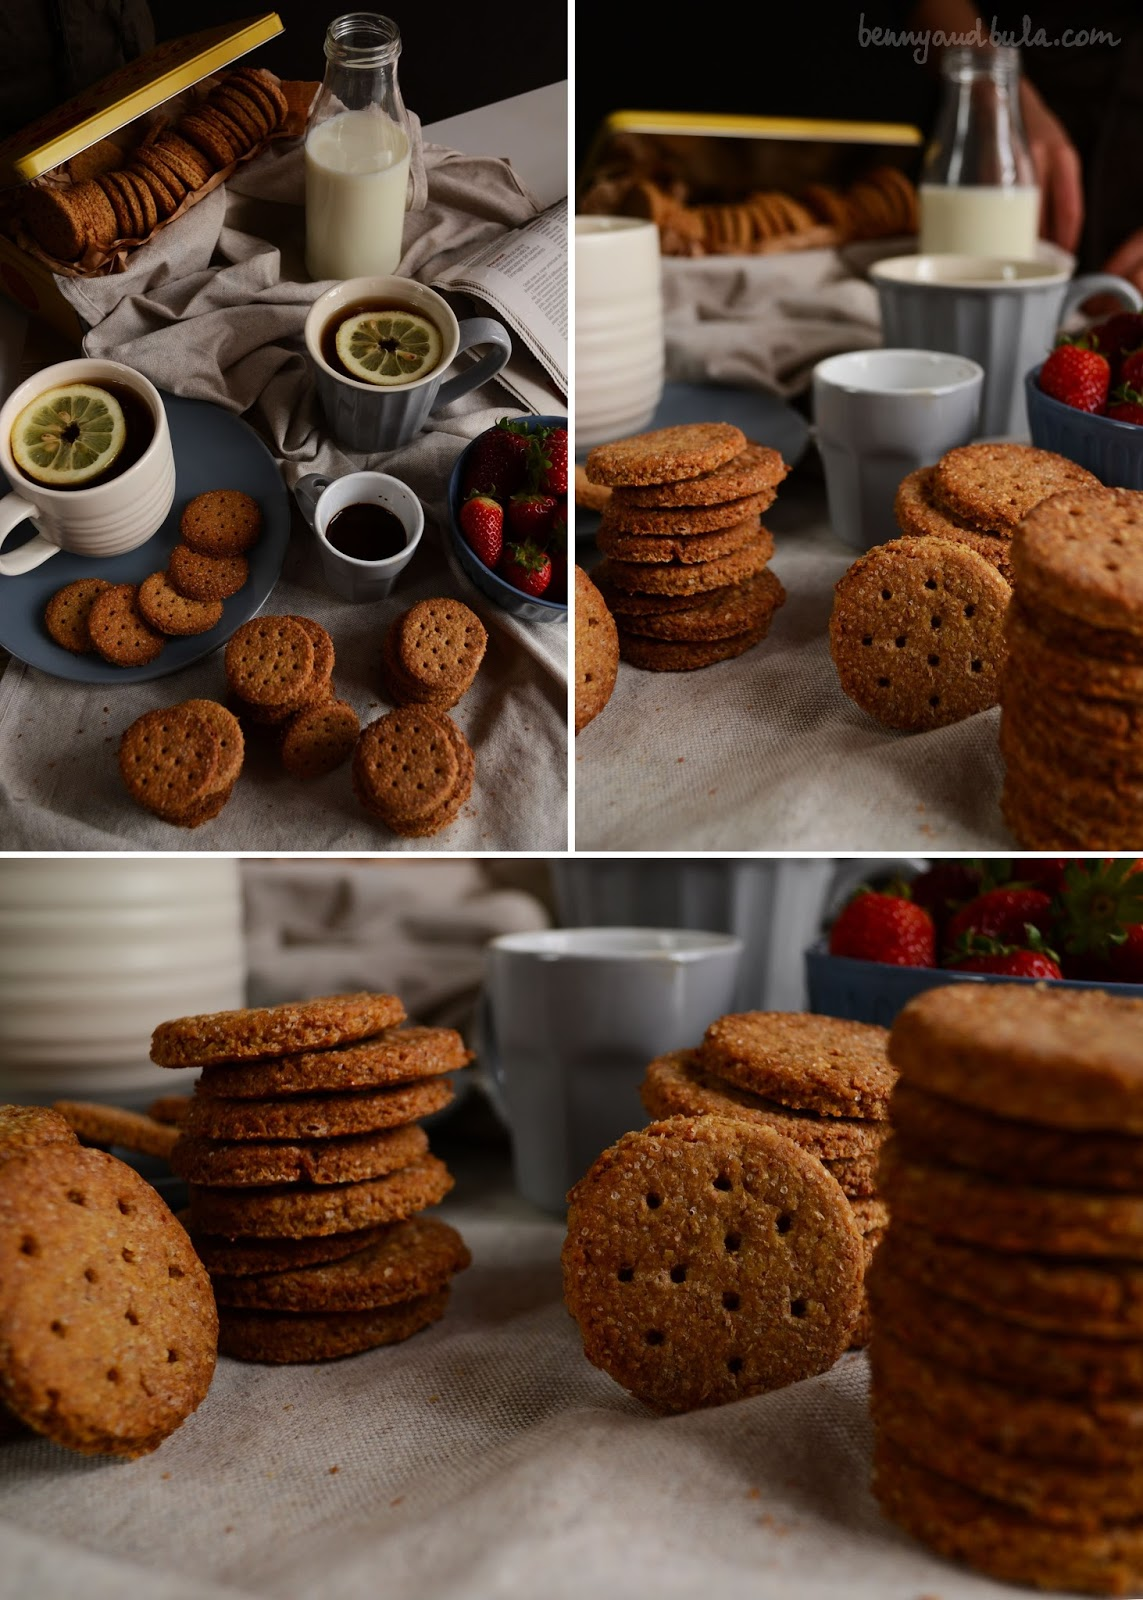 frollini integrali ricetta/ whole wheat cookies recipe